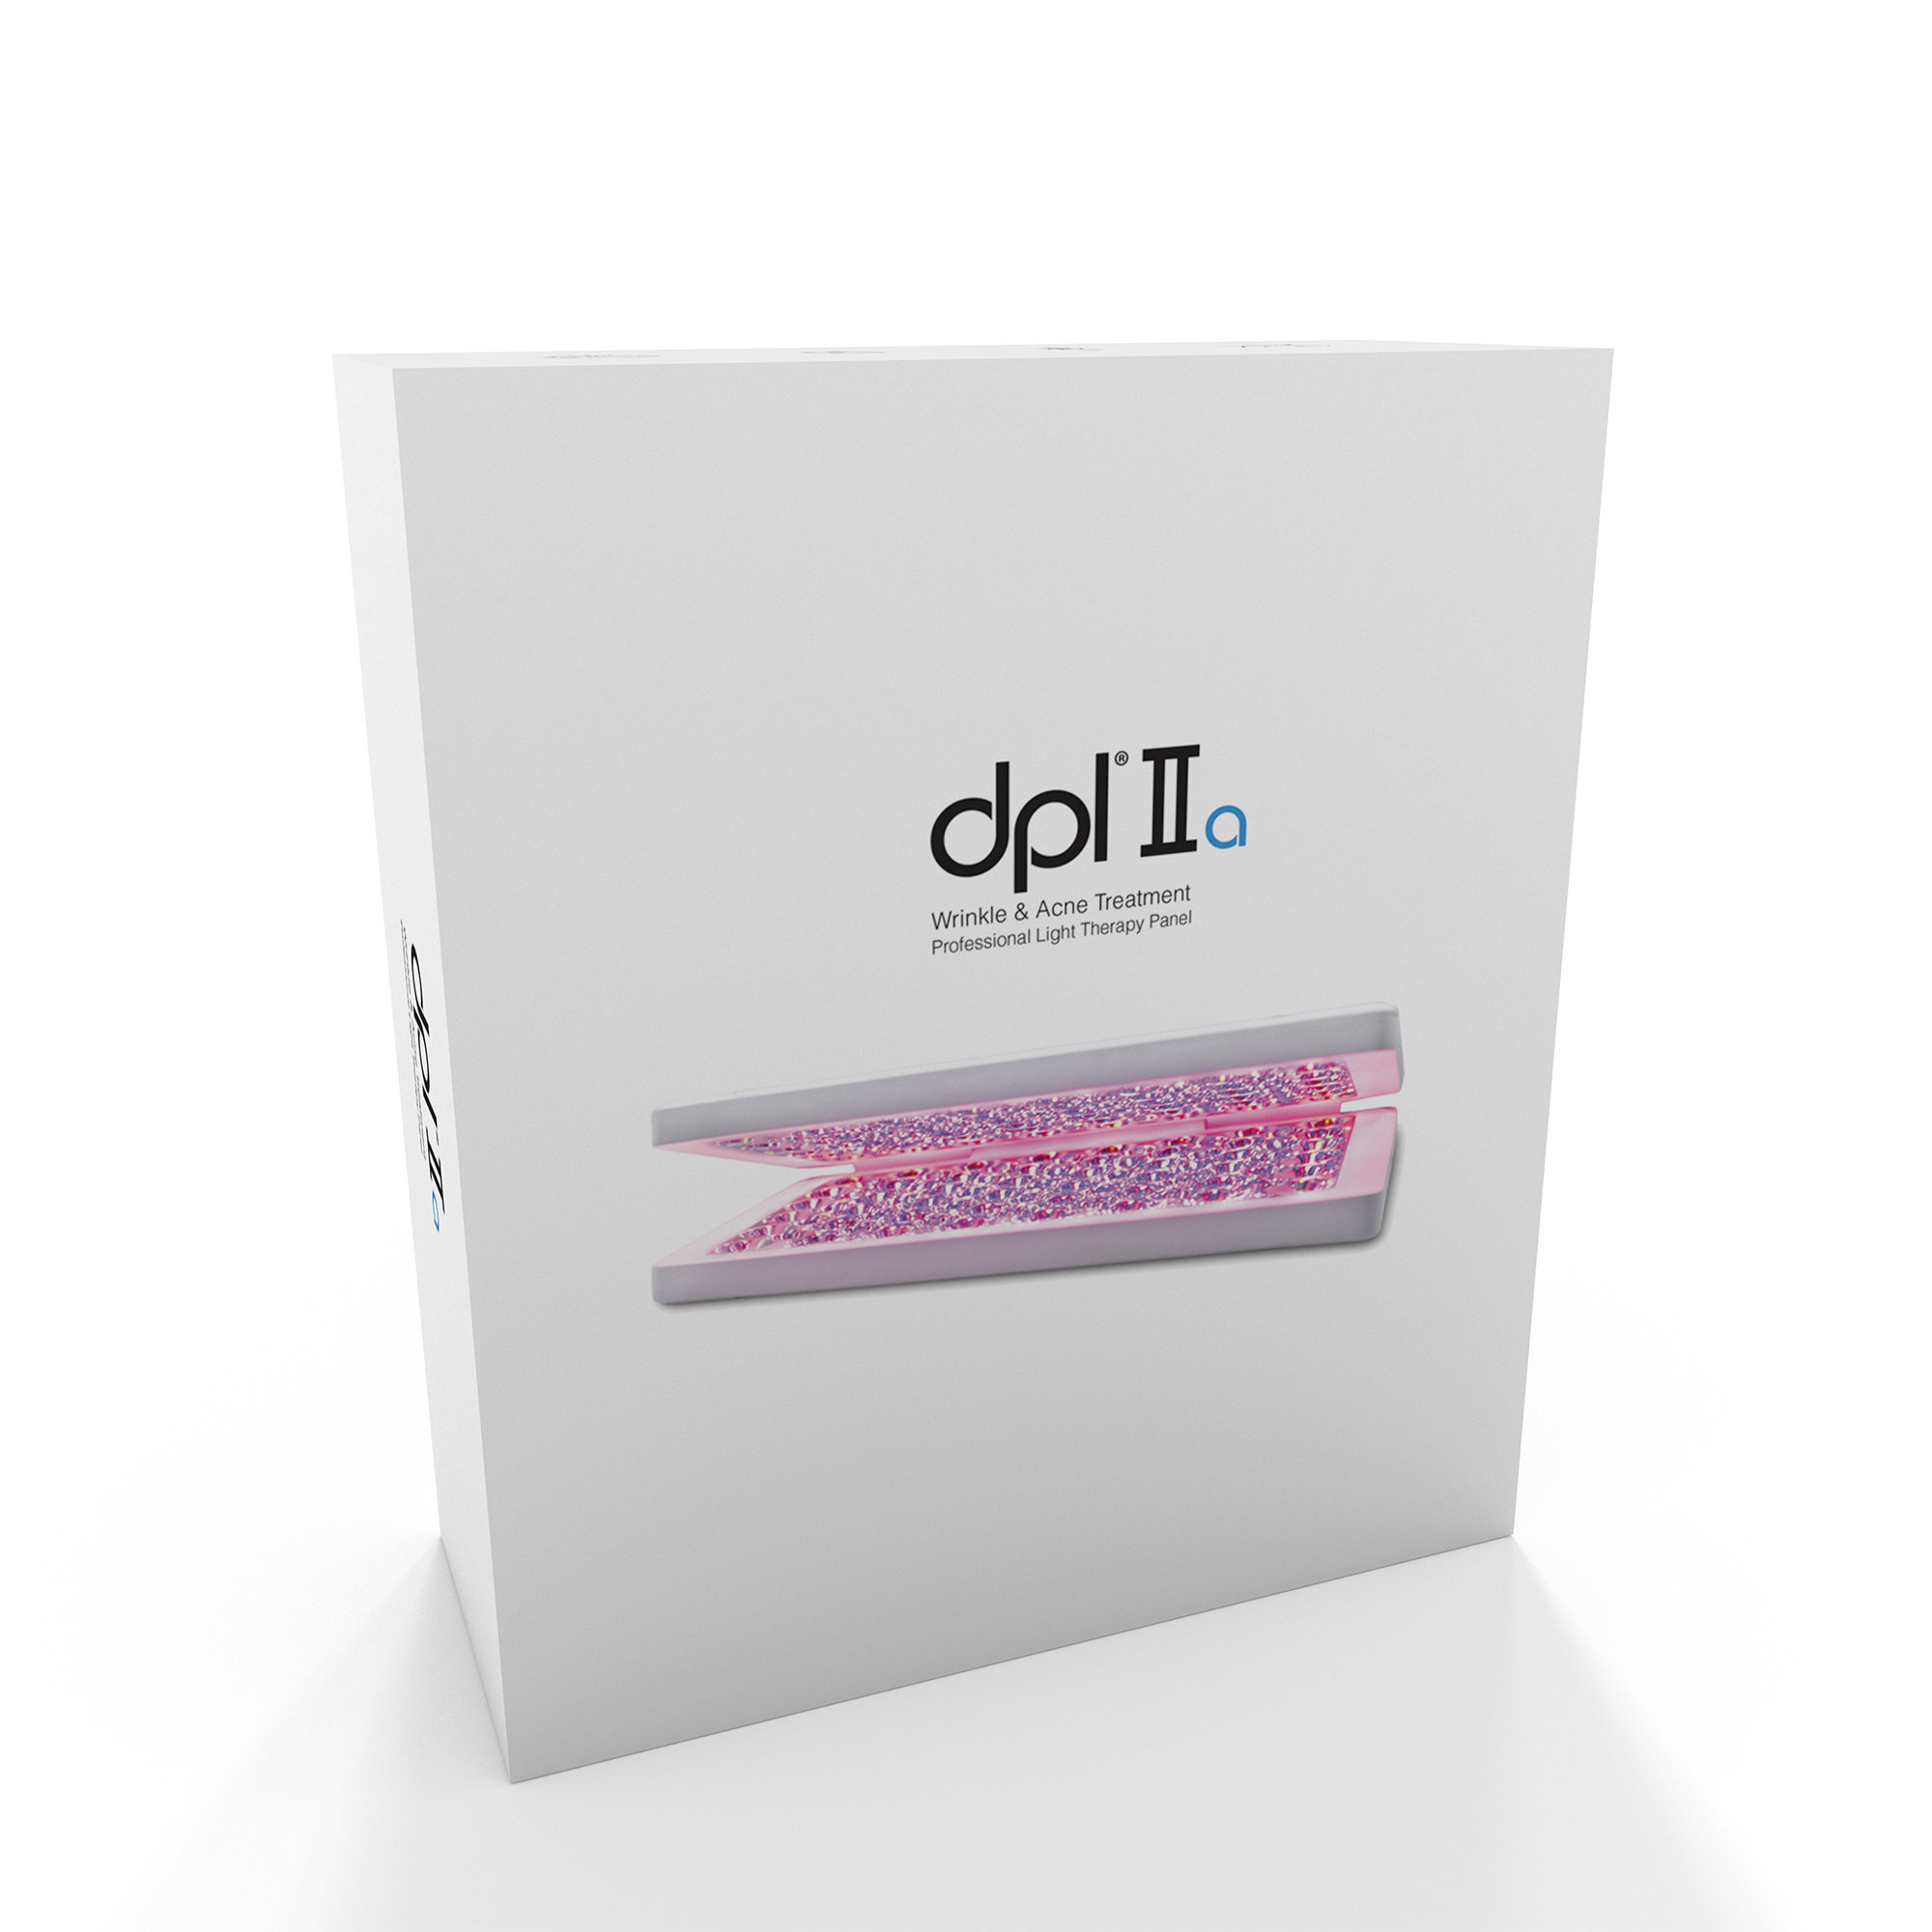 dpl IIa packaging